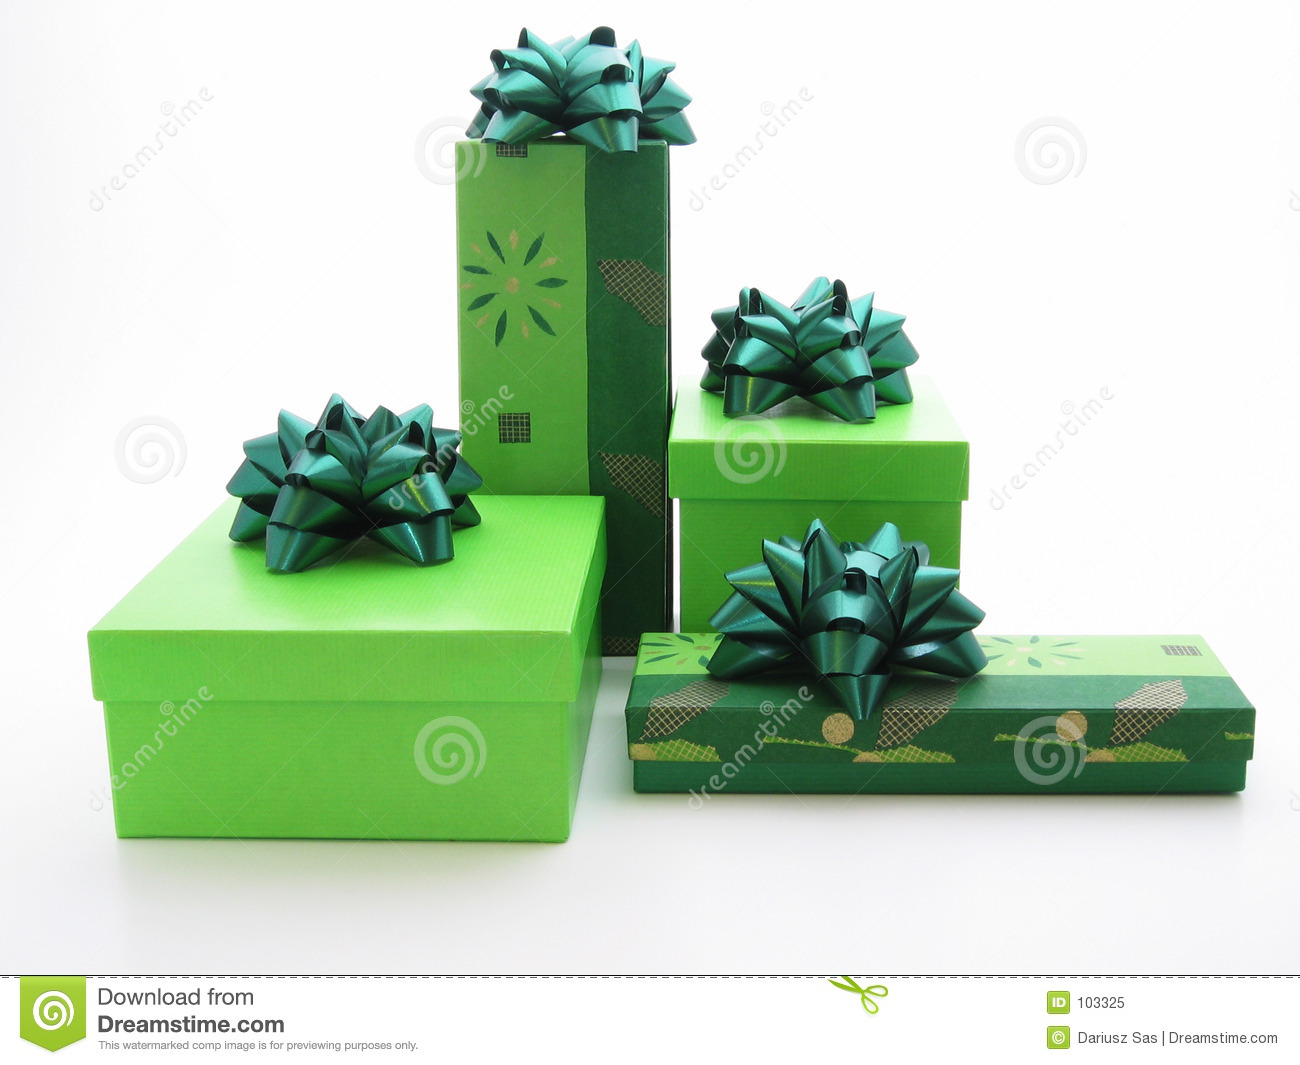 Green Gifts Royalty Free Stock Photo - Image: 103325